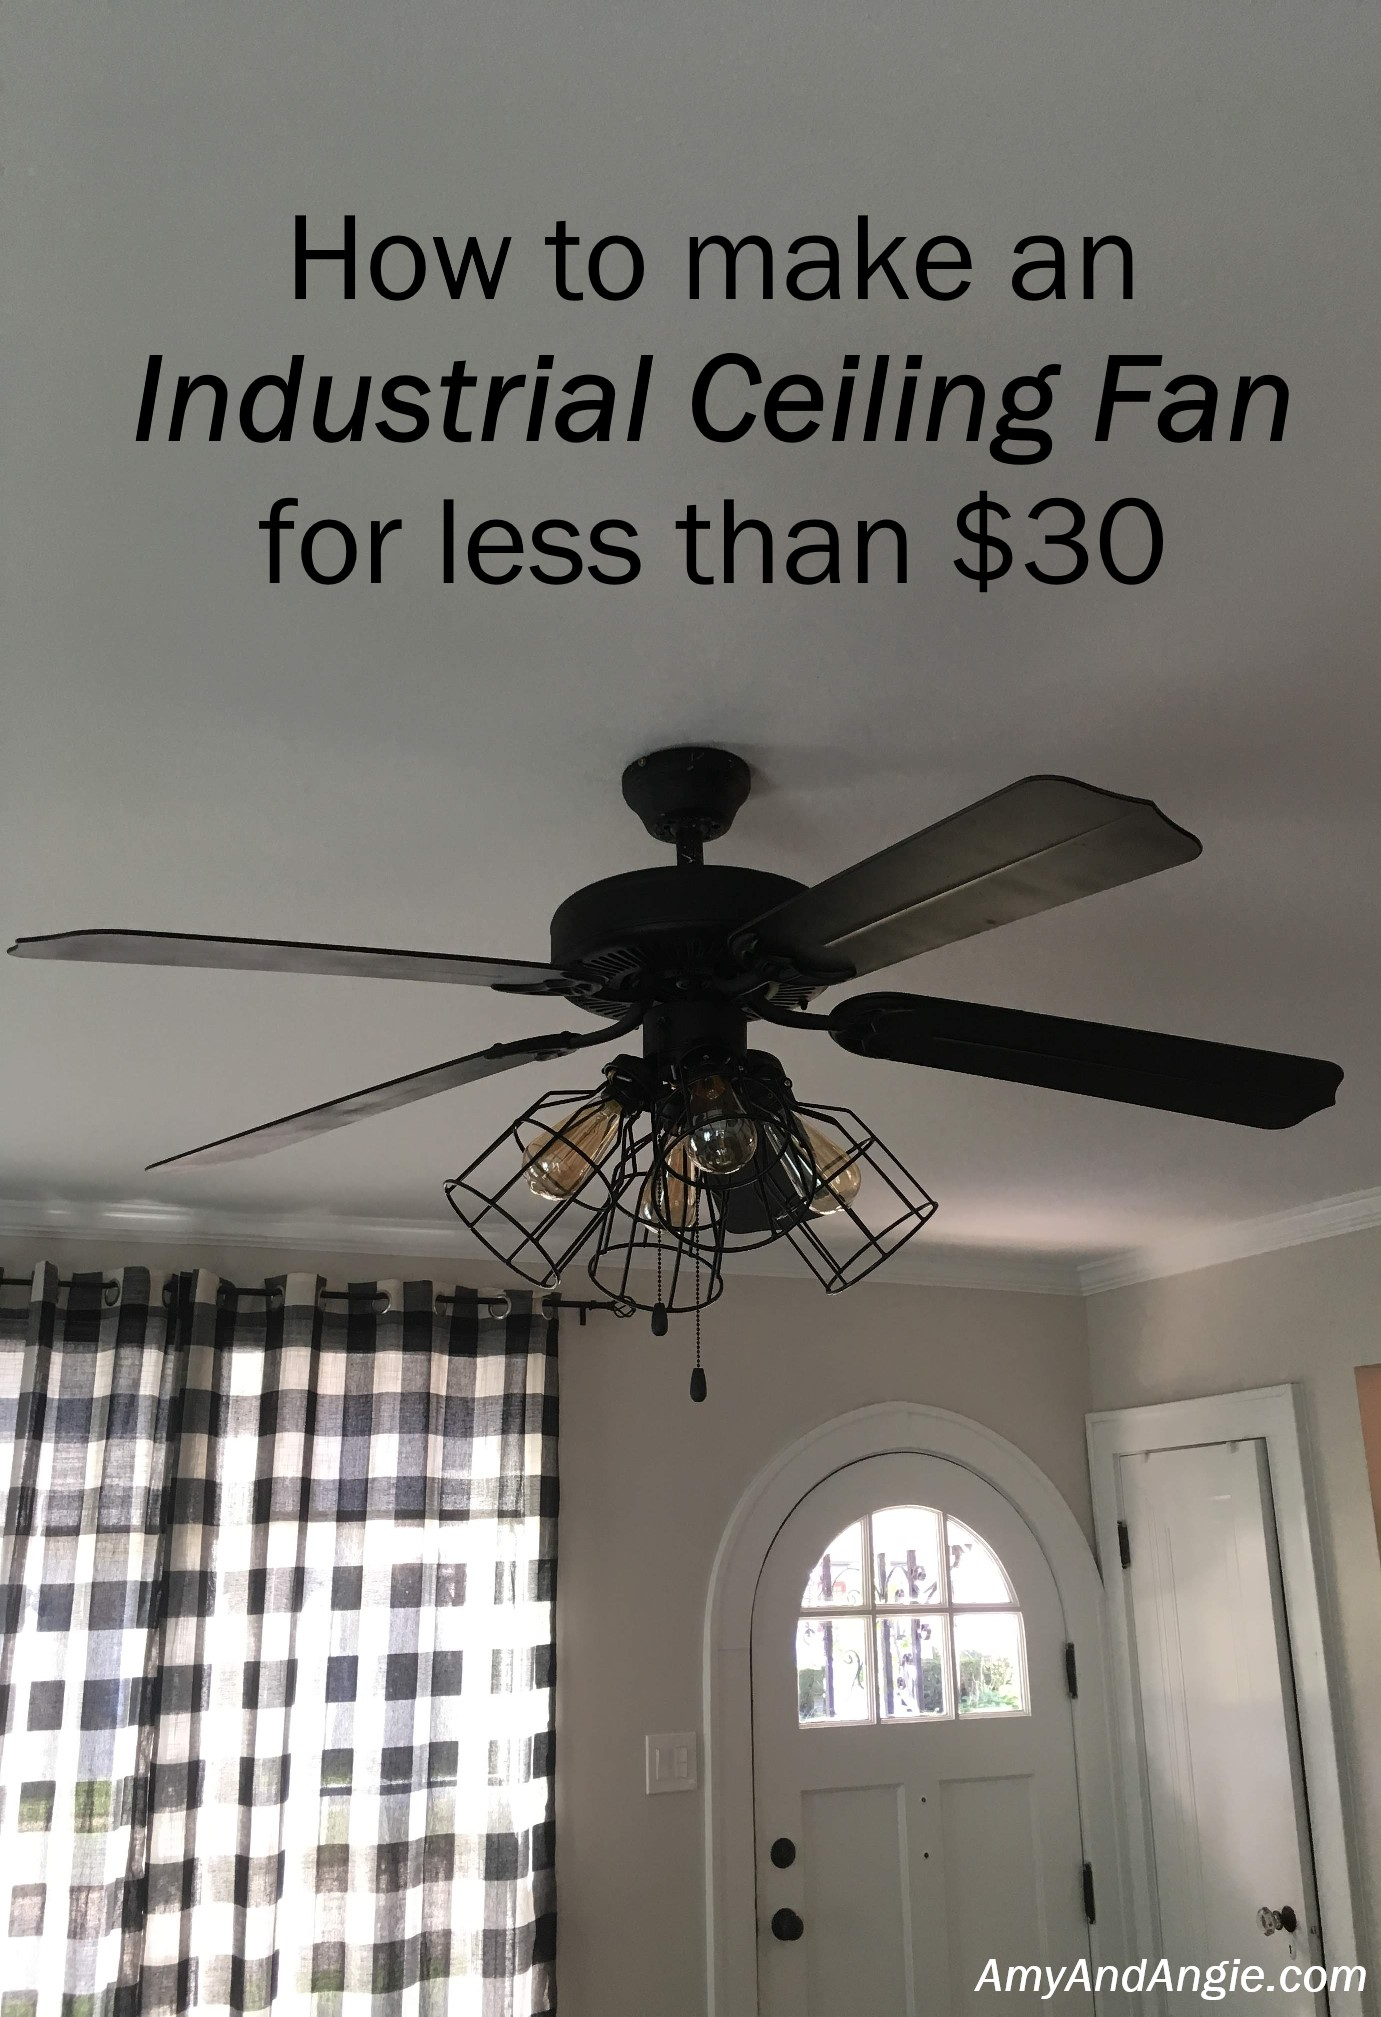 Get The Most Out Of Living Room Ceiling Fan I knew I wanted to have a most industrial looking fan in our living room,  but was decidedly not enjoying the price tags for these guys: